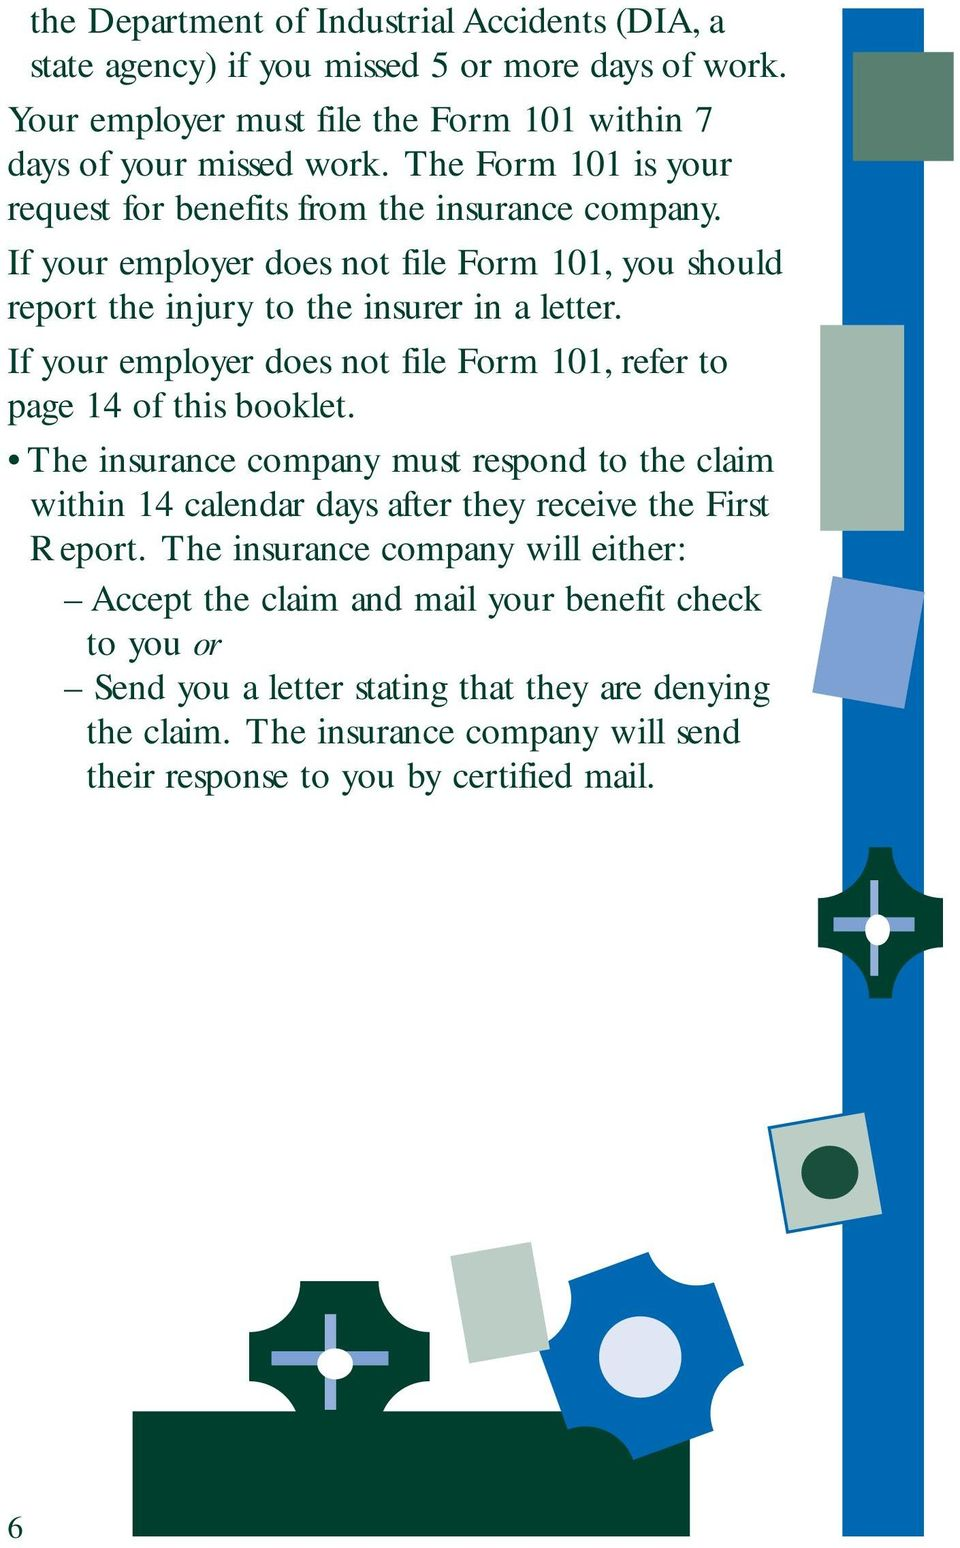 If your employer does not file Form 101, refer to page 14 of this booklet. The insurance company must respond to the claim within 14 calendar days after they receive the First Report.